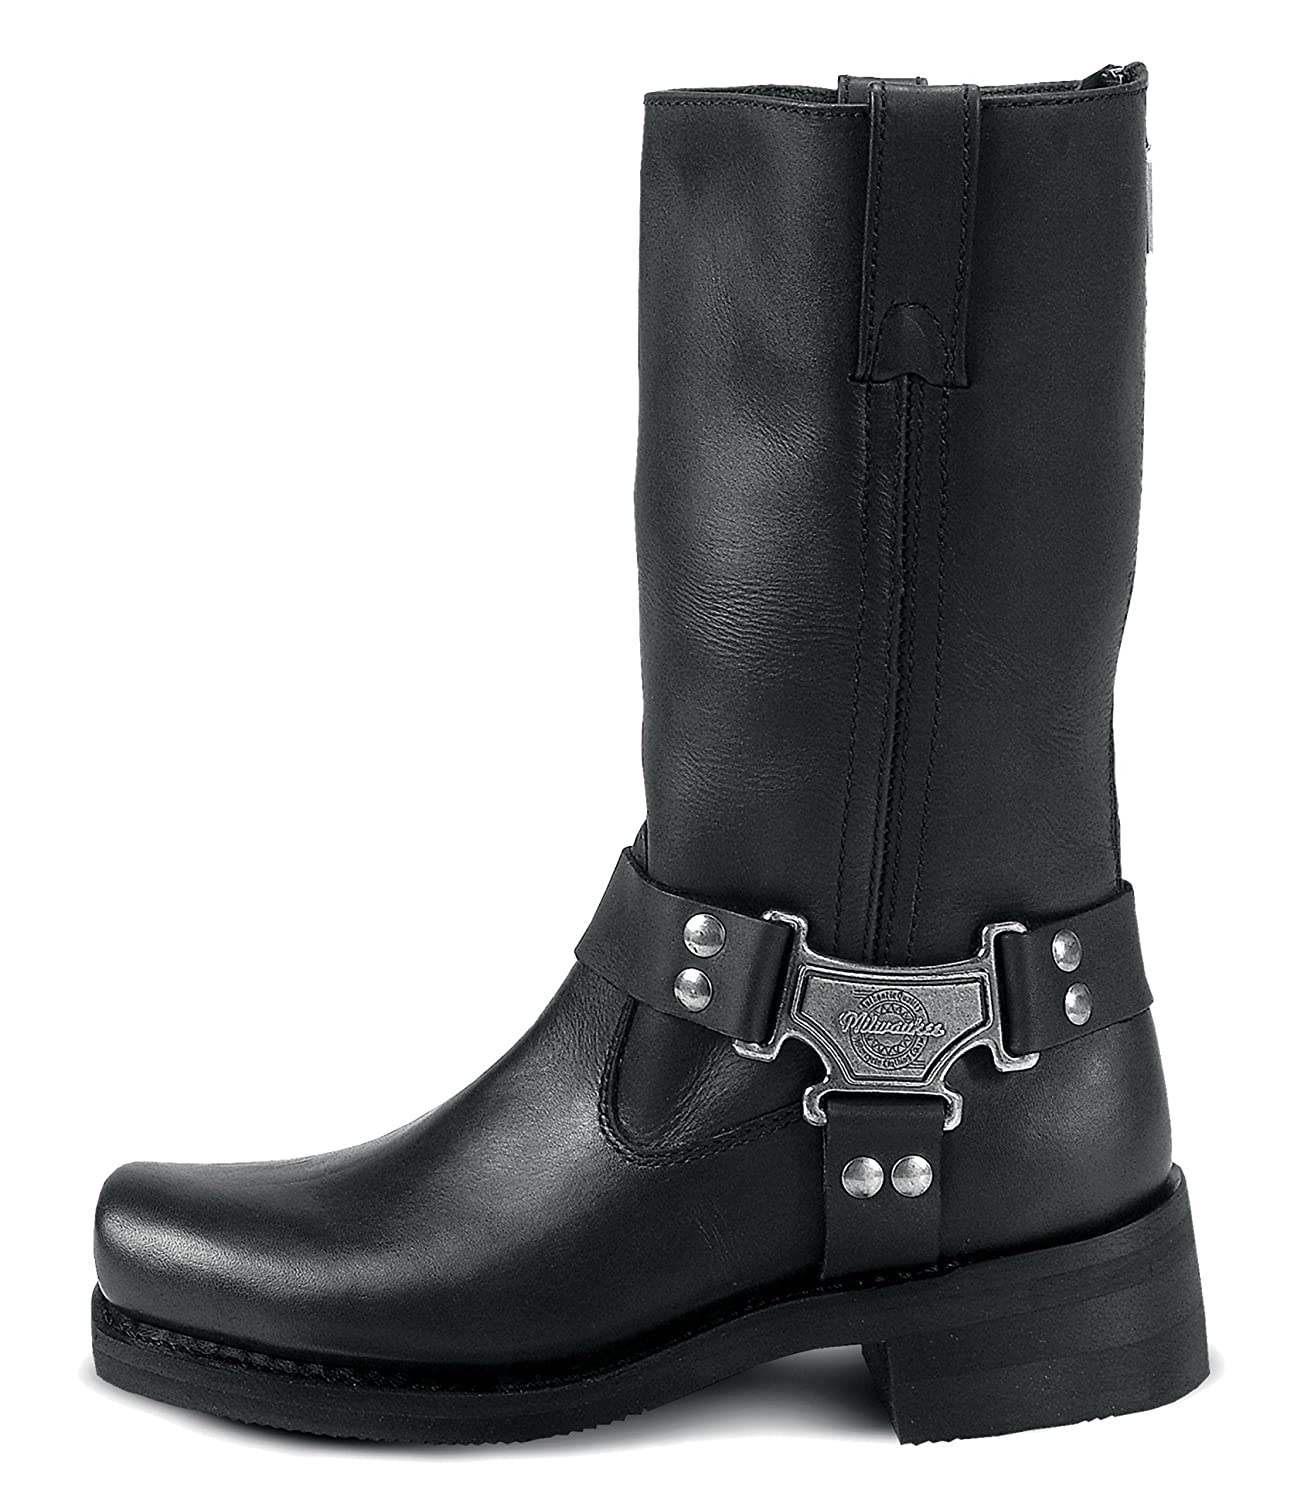 Black, Size 11D Milwaukee Motorcycle Clothing Company Classic Harness Leather Mens Motorcycle Boots